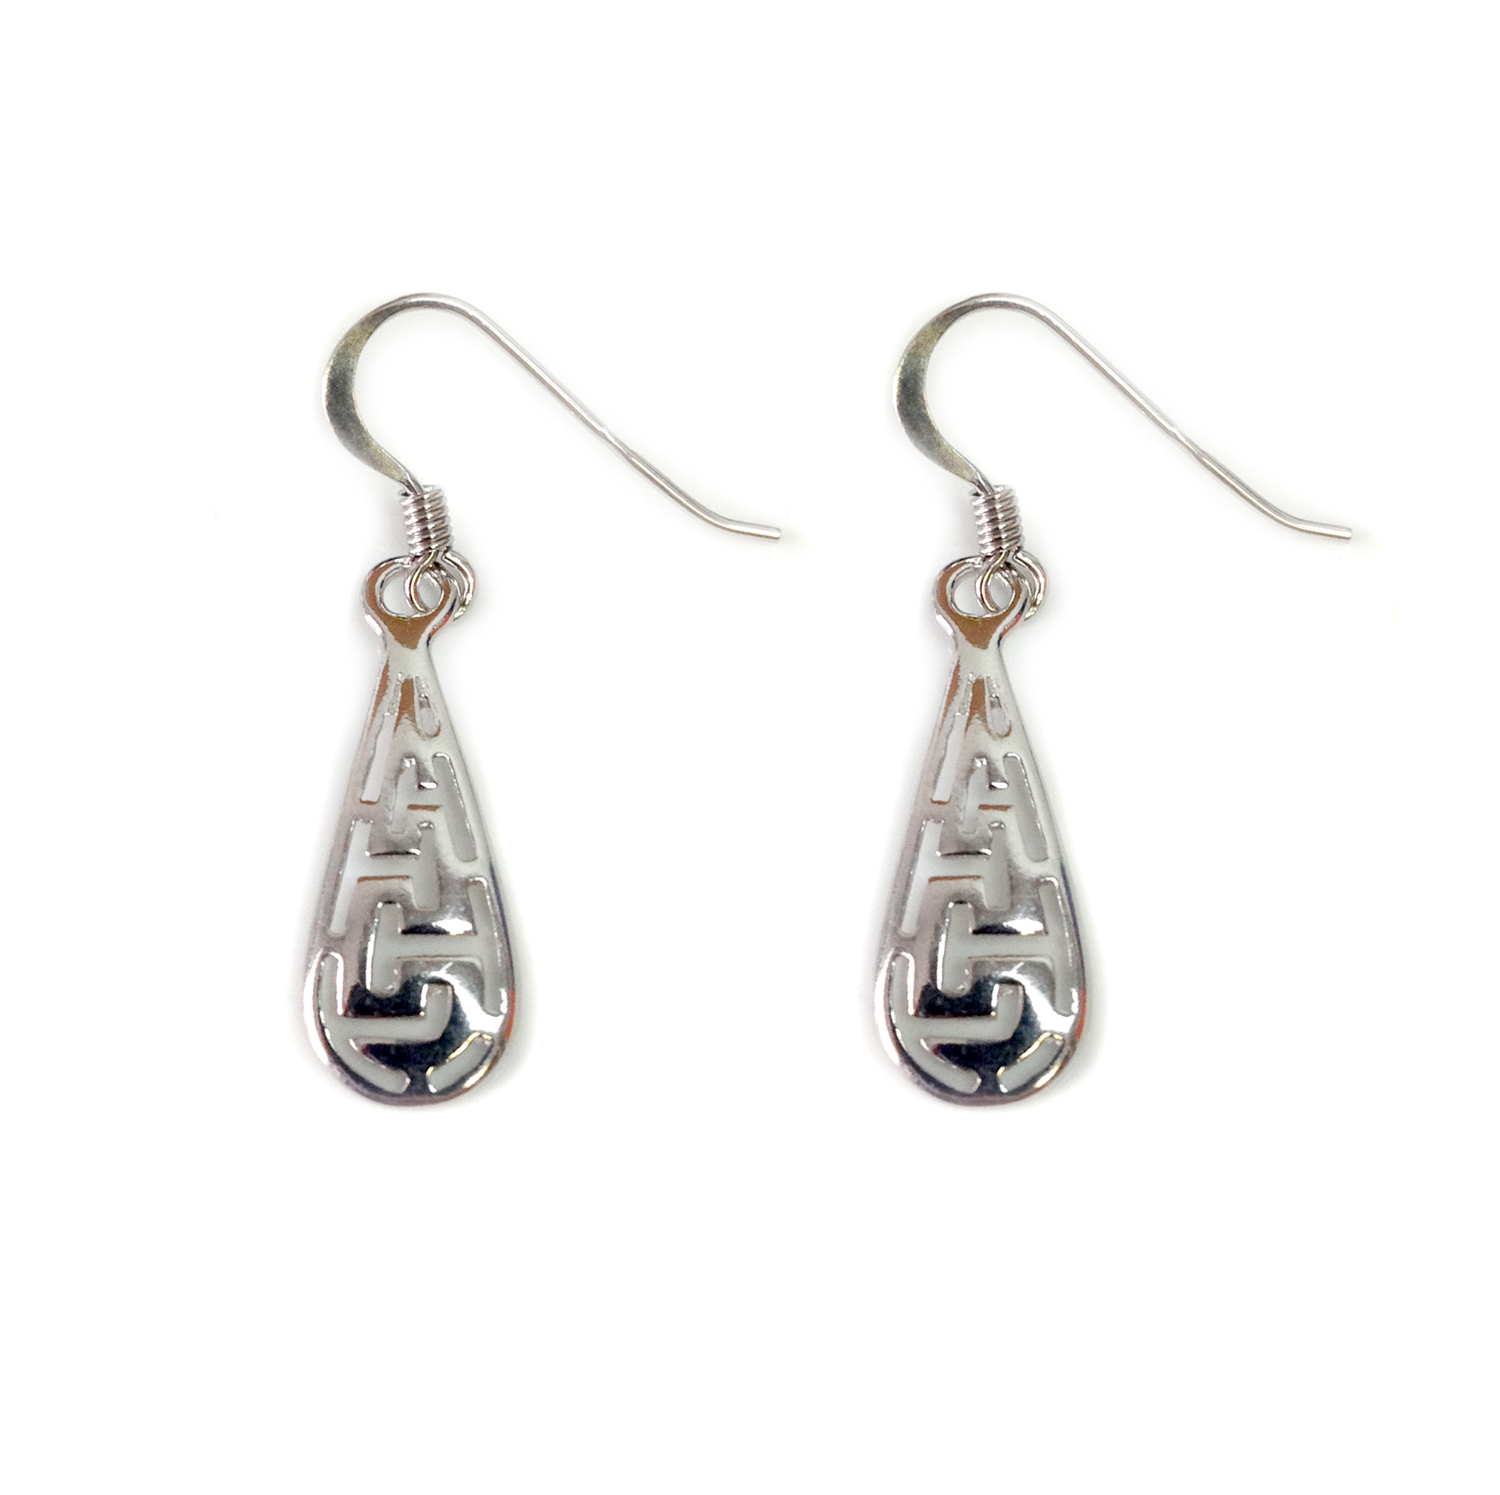 Sterling Silver Ancient Greek Key Drop Earrings Inspired from the of Greek ancient jewelry era, designed  and shaped into a  meander  also known as Greek key design, makes this timeless pair of french wire dangle earrings a staple of a 3000 year old history.